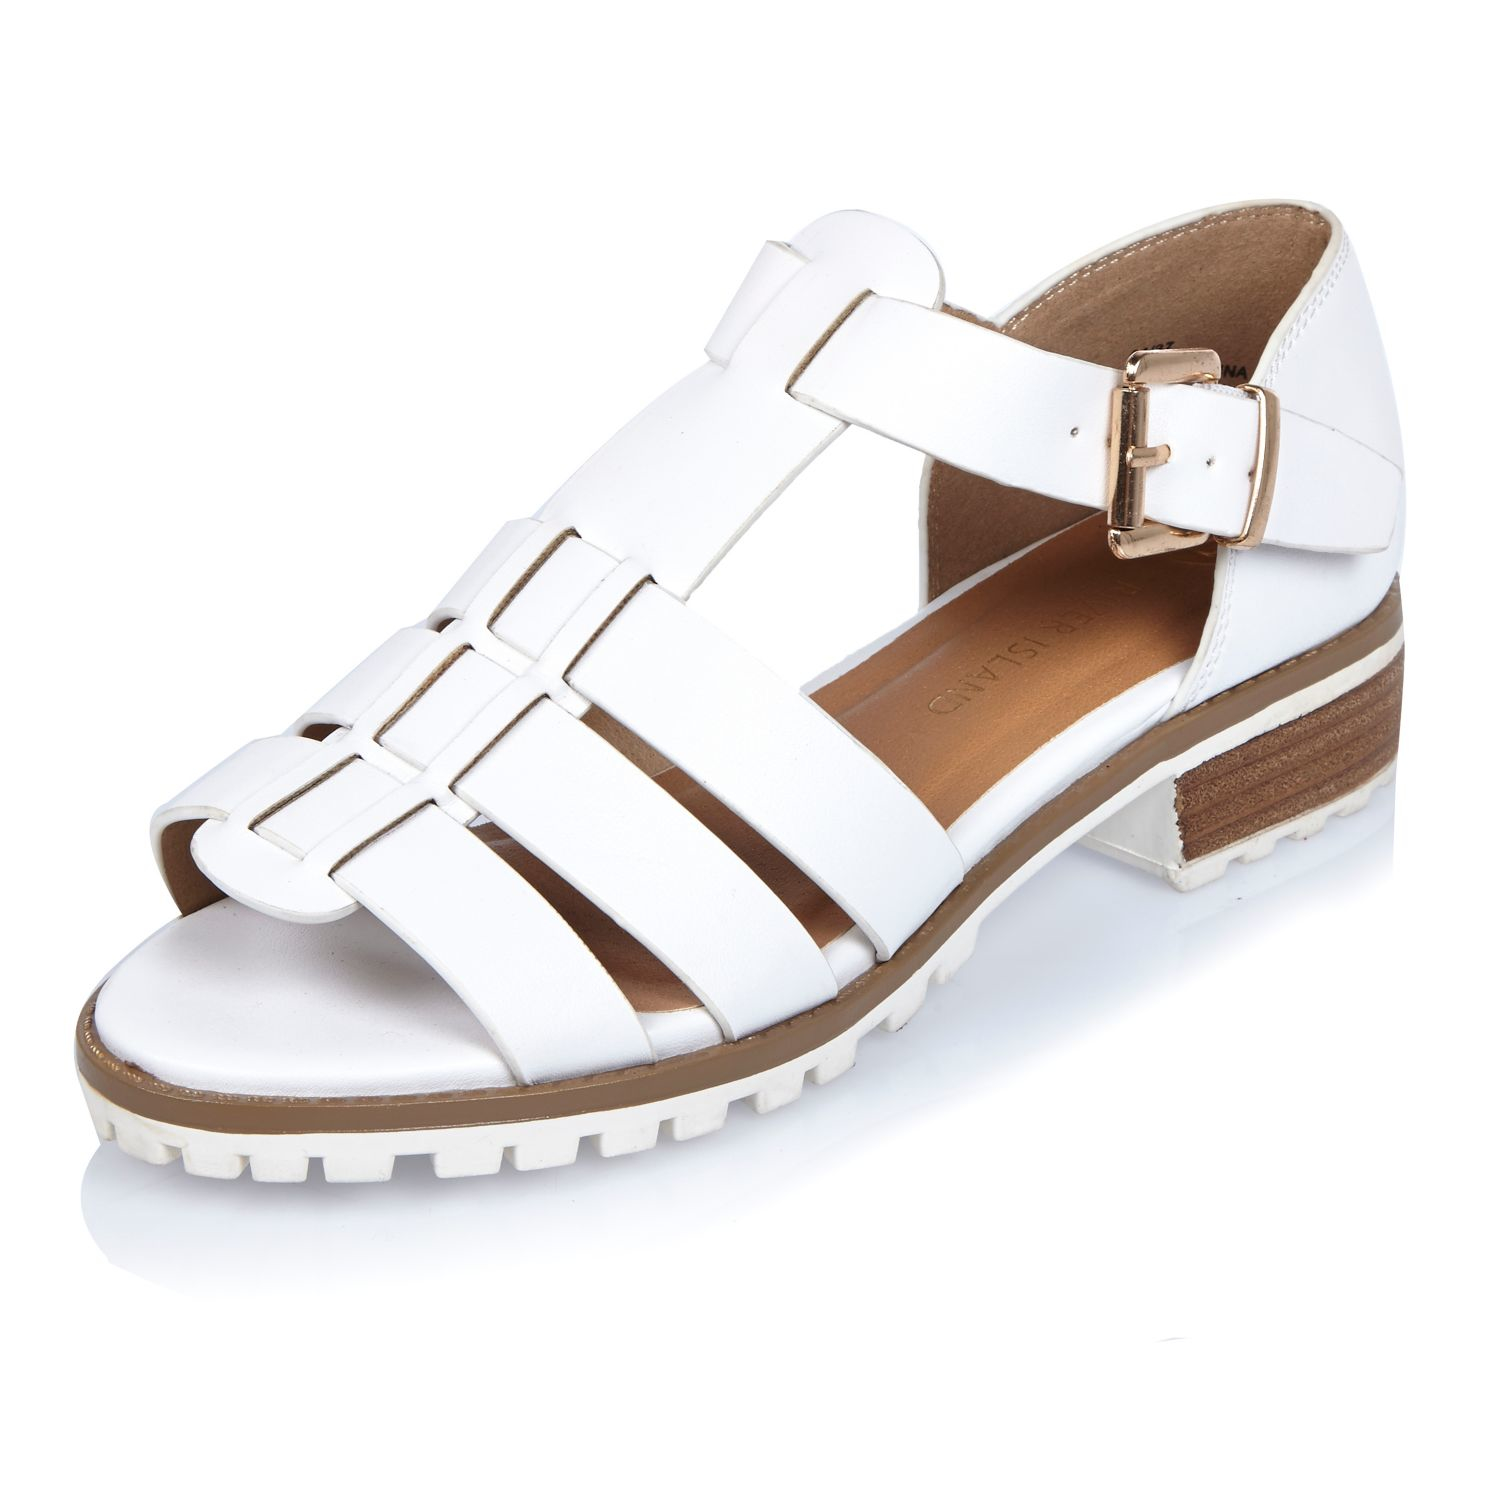 c8522f082e3 Lyst - River Island White Strappy Open Toe Geek Shoes in White